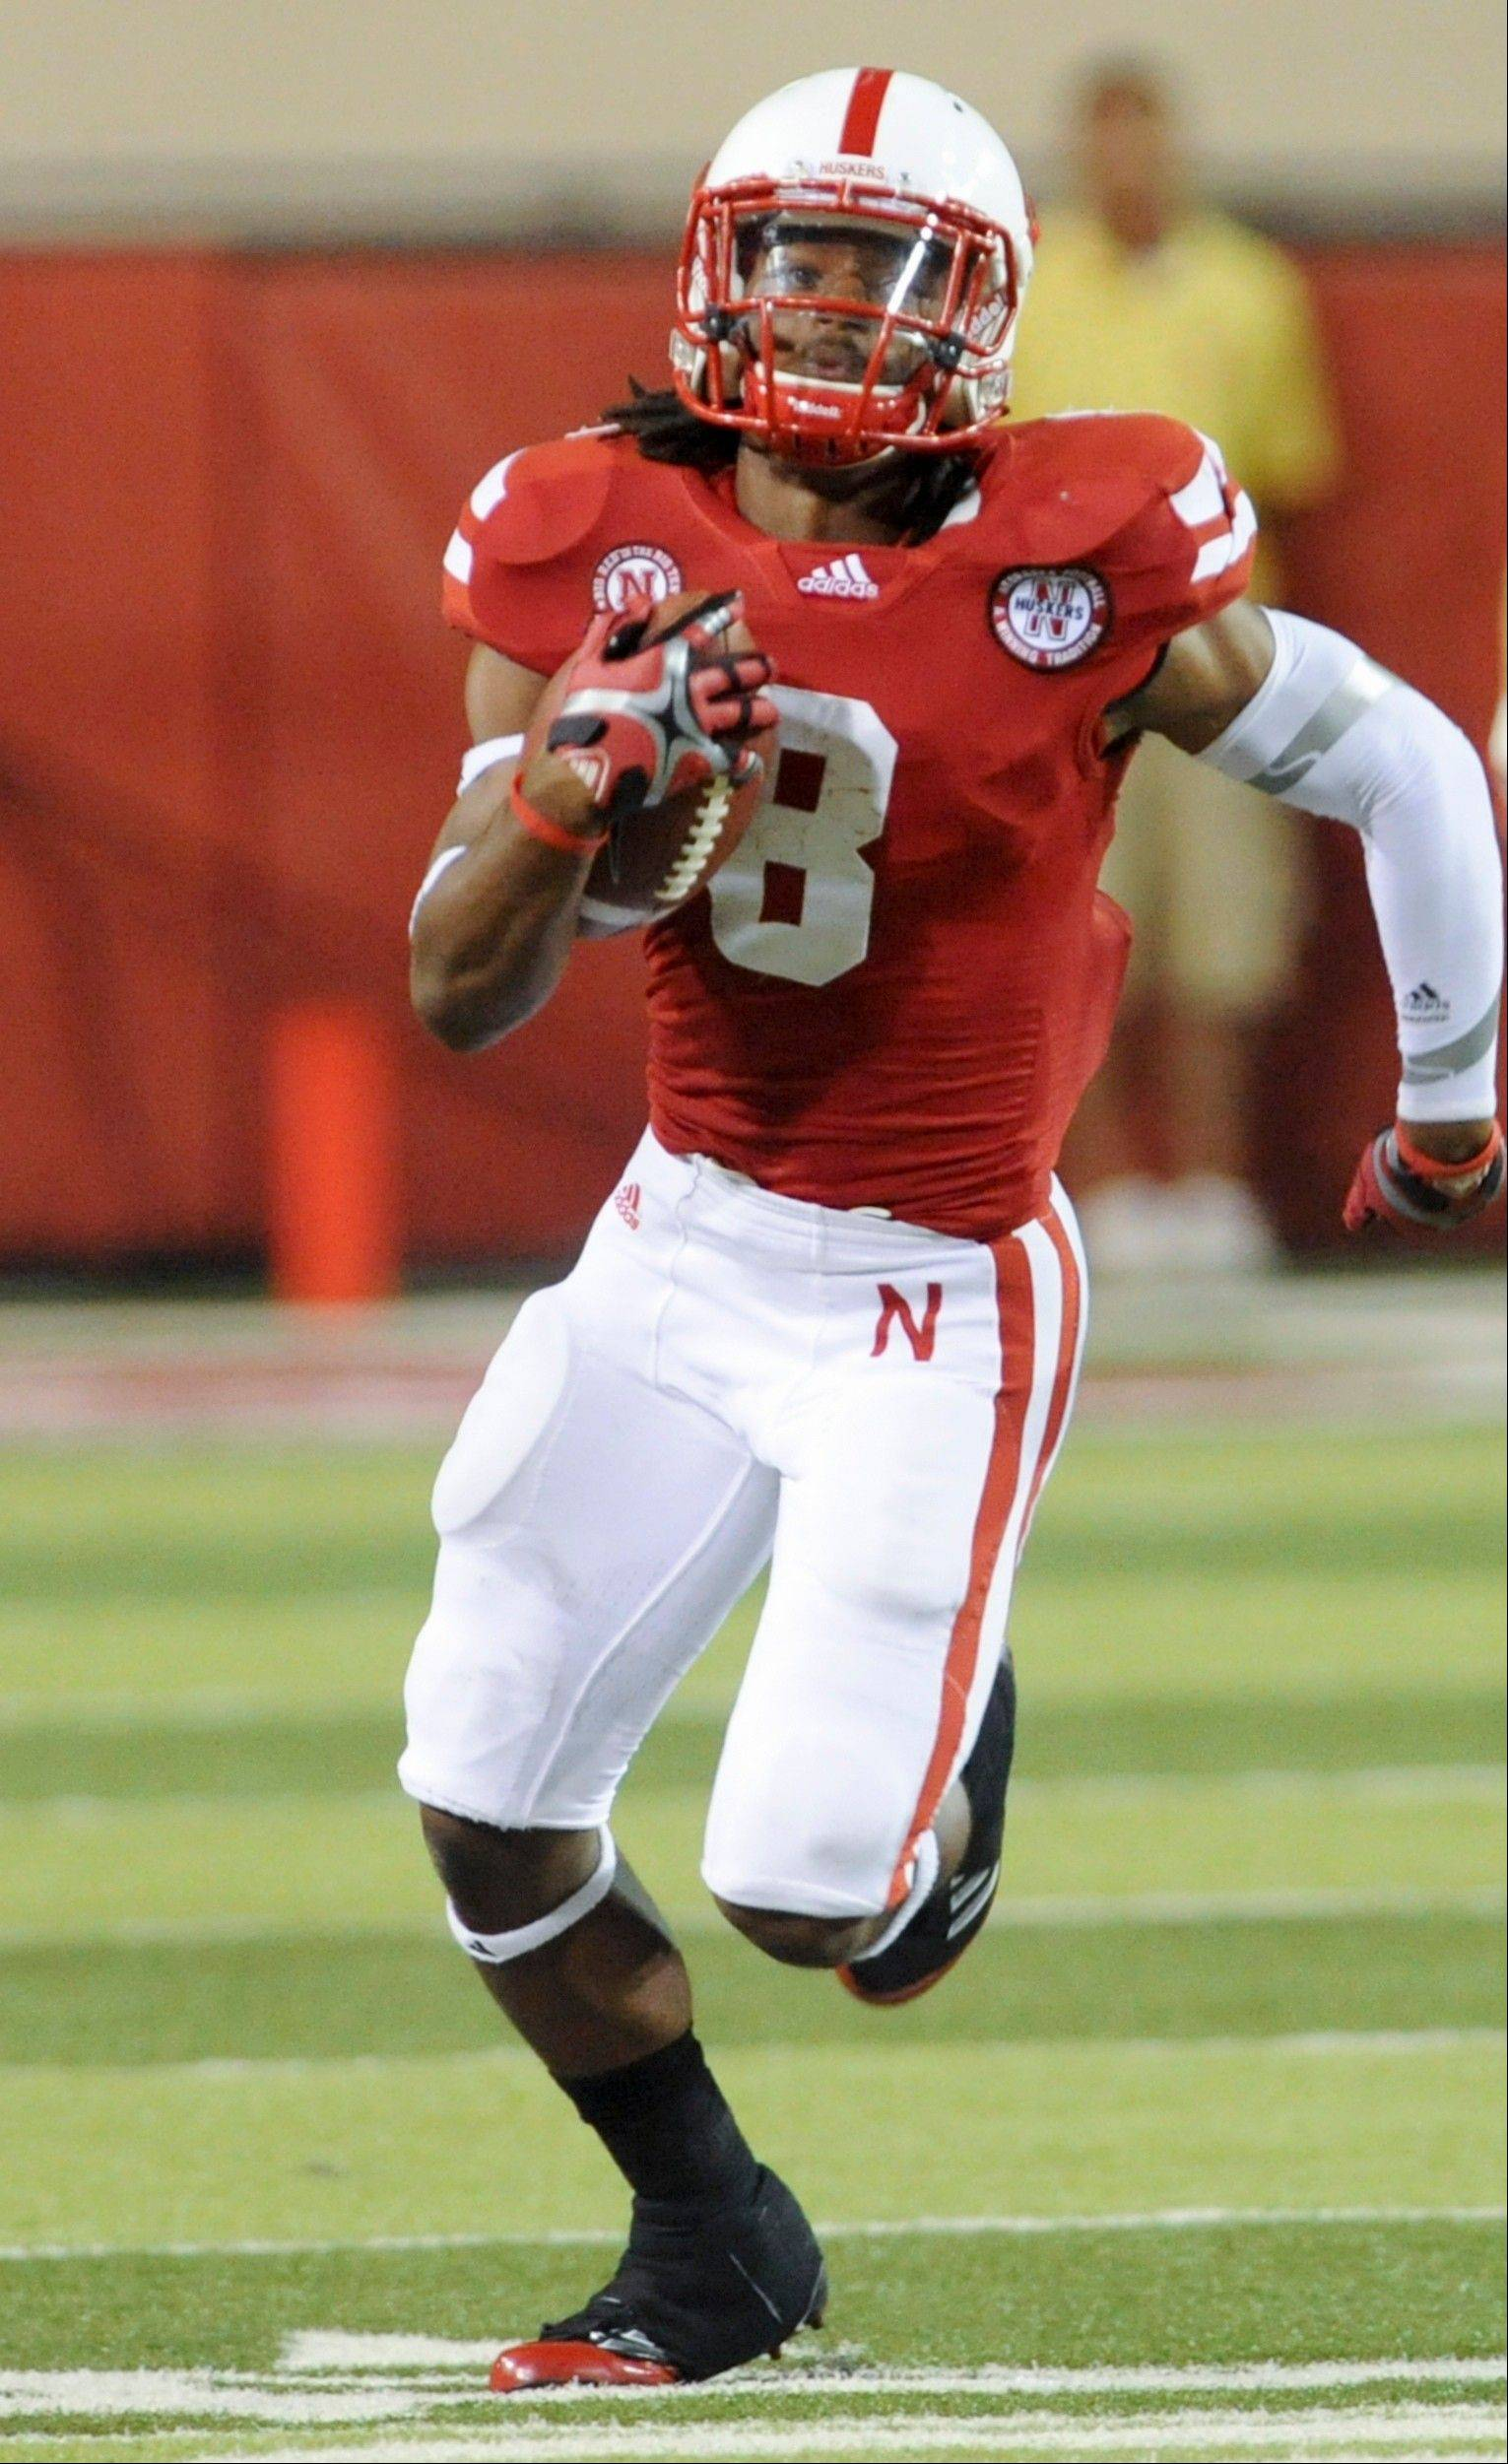 Nebraska's Ameer Abdullah returns a kickoff 100 yards for a touchdown in the second half Saturday against Fresno State. He came to Nebraska as the least heralded of the three running backs in the 2011 recruiting class. No doubt, his Q rating has shot past that of those other backs, Braylon Heard and Aaron Green, since he returned a kickoff 100 yards for a touchdown to break open last week's 42-29 win over Fresno State.